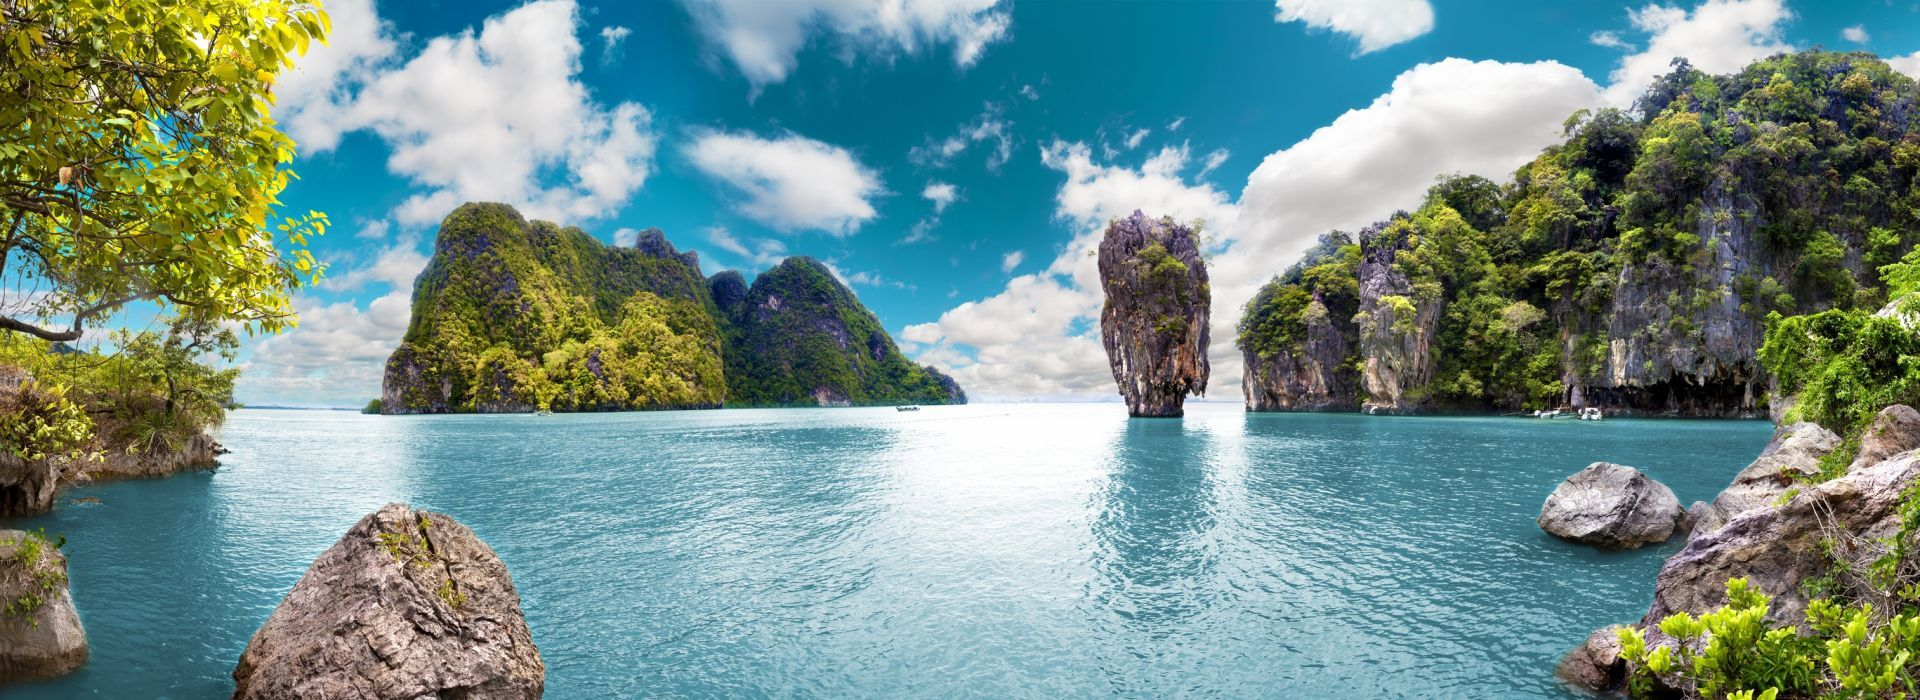 Boat tours, water sports and marine wildlife in Bangkok